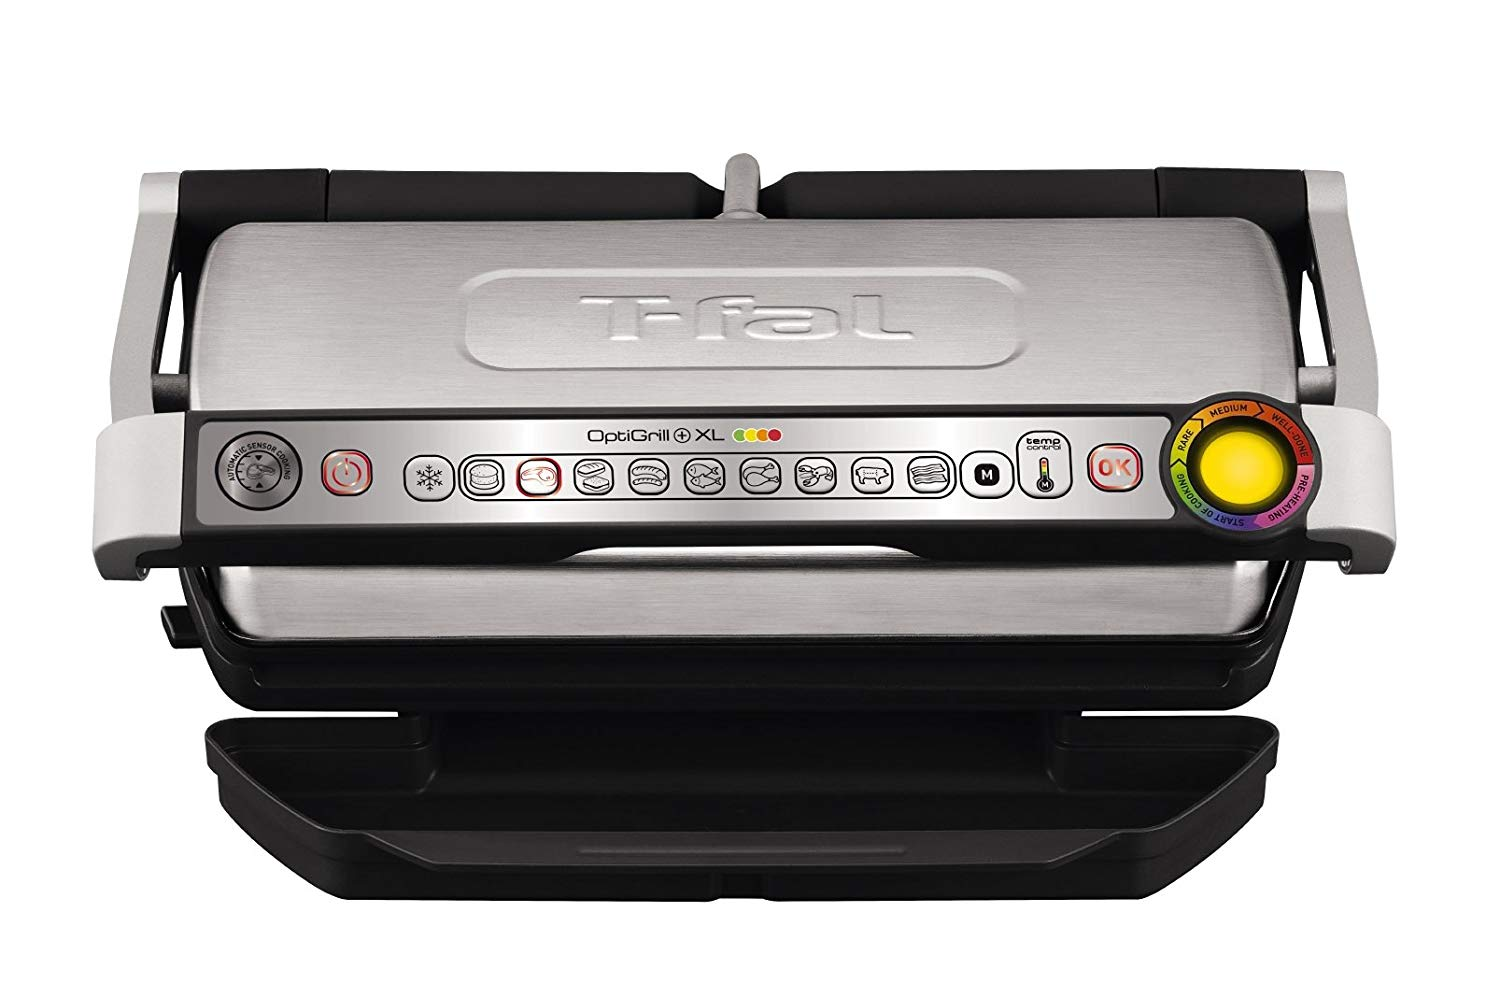 T-fal OptiGrill XL GC722D53 Stainless Steel Indoor Electric Grill Review